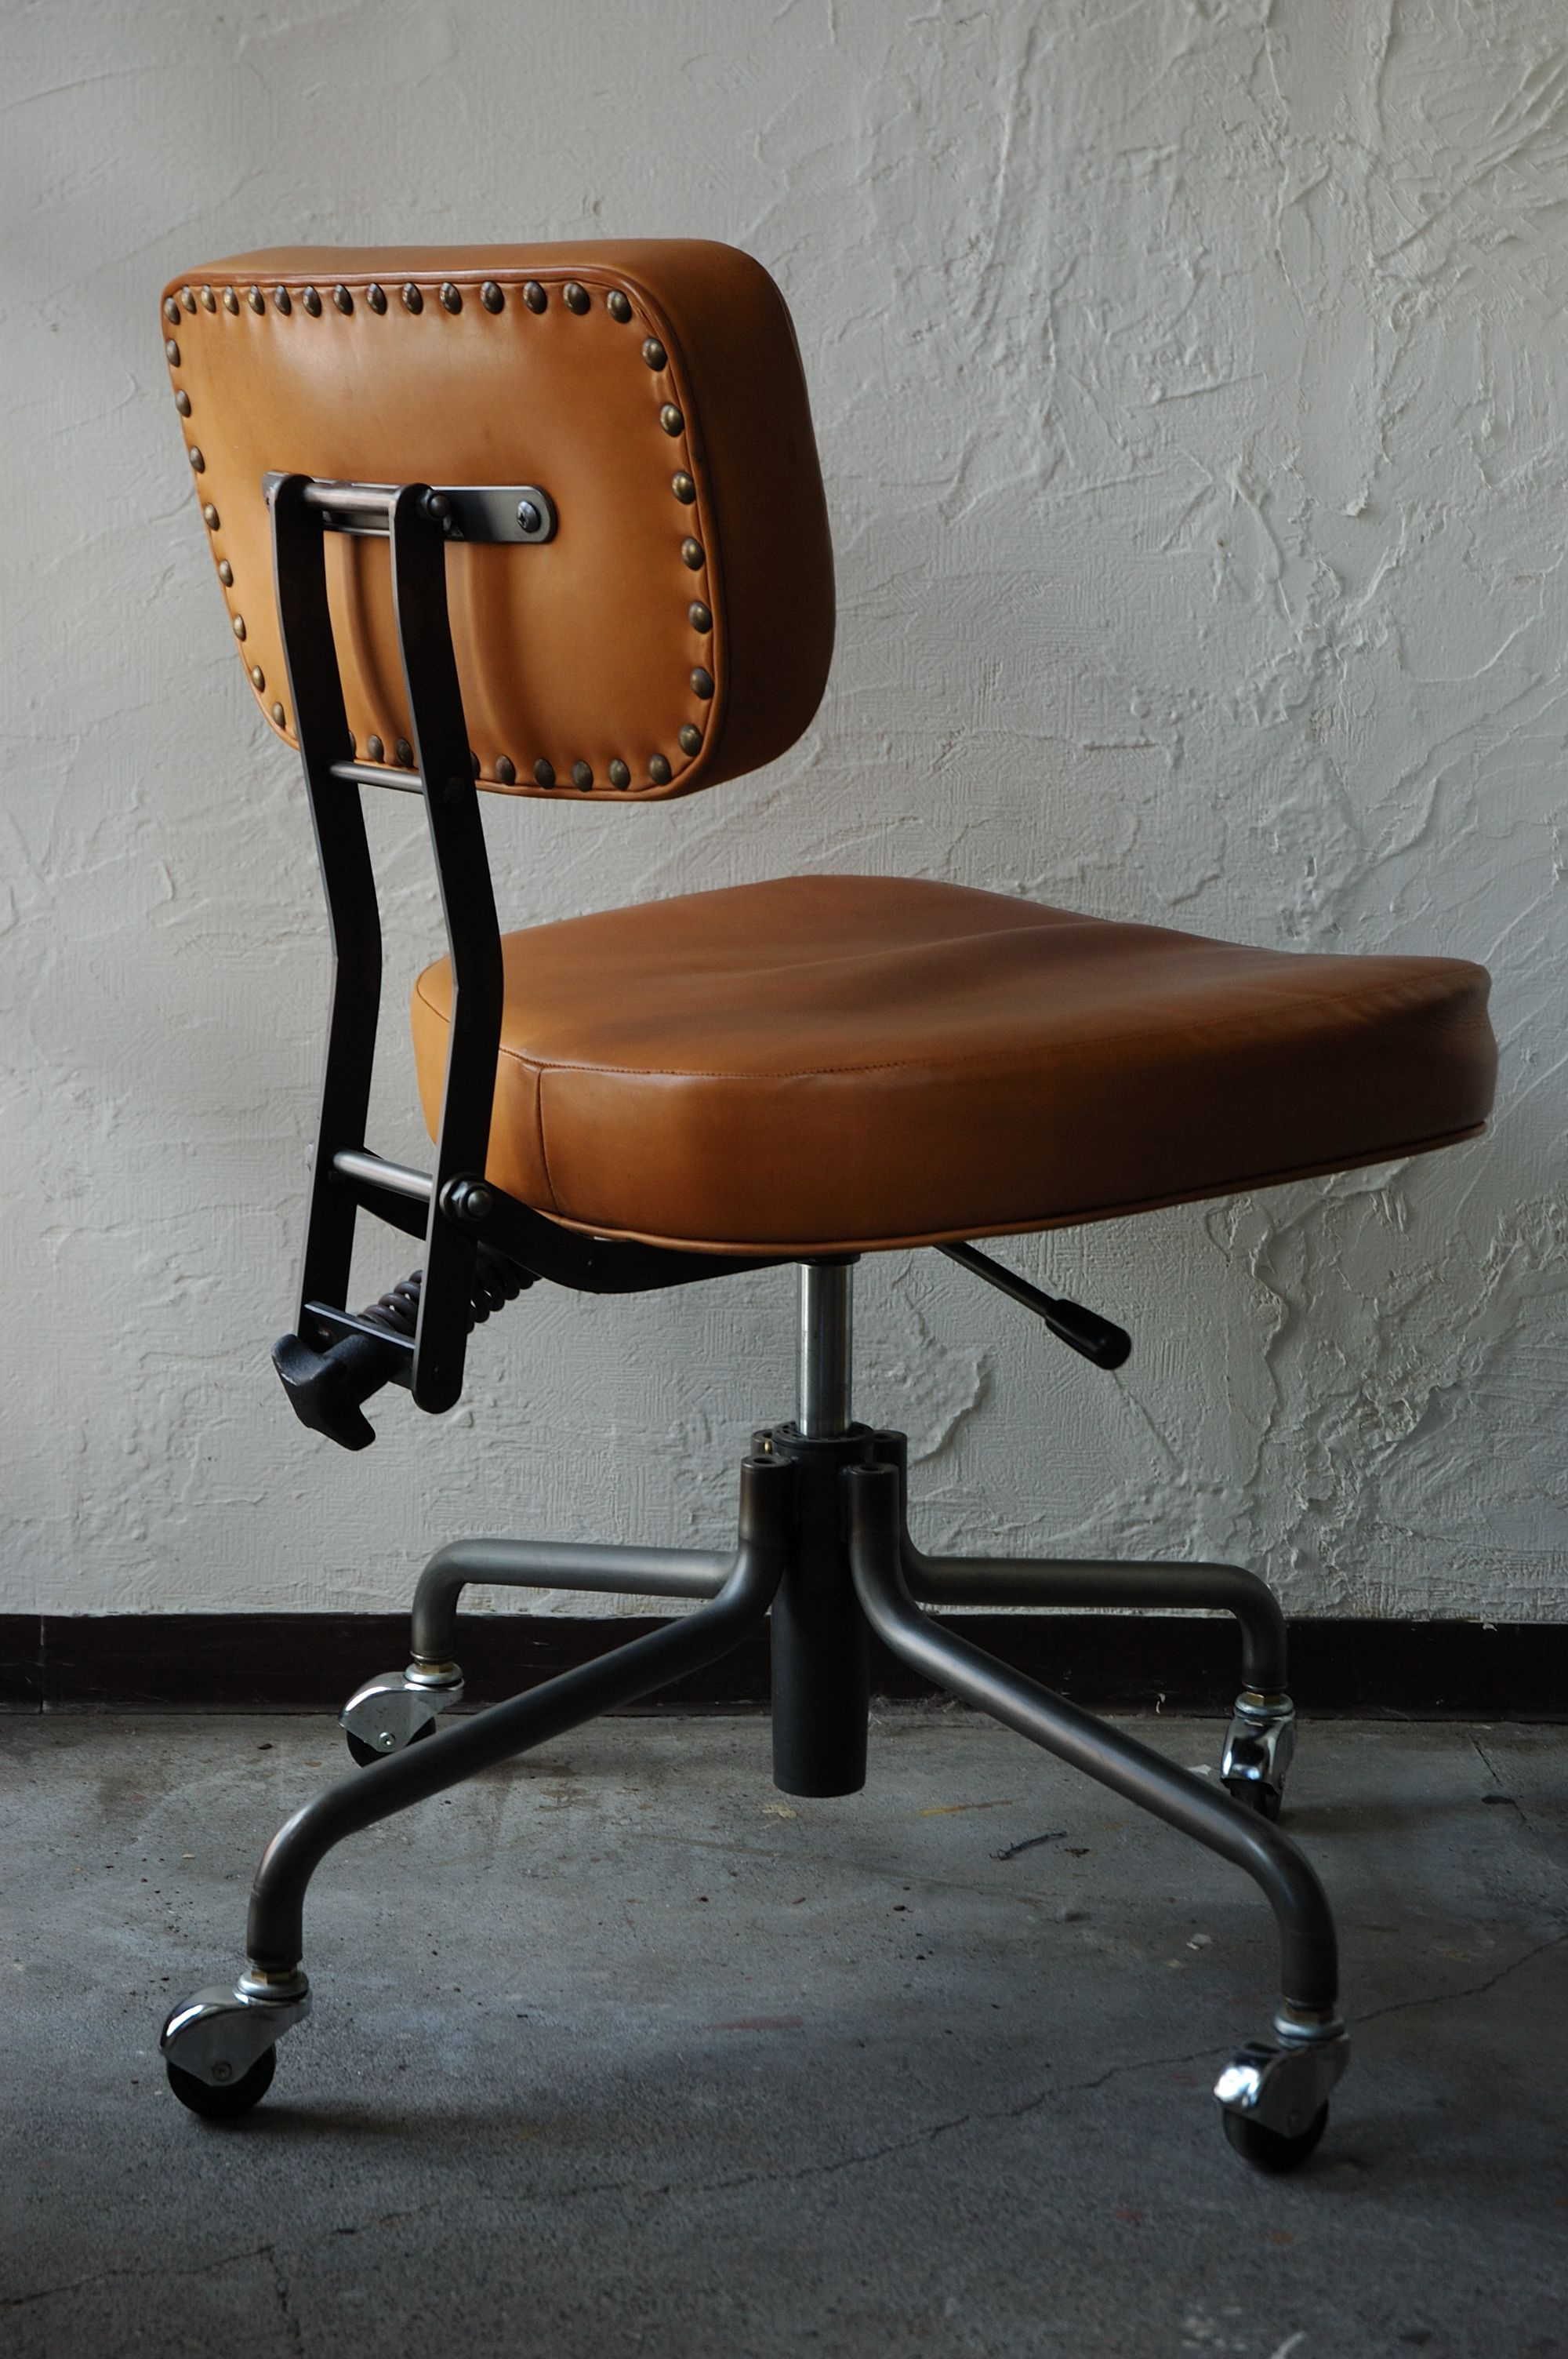 My Chair Truck Industrial Office Chairs Modern Office Chair Vintage Office Chair